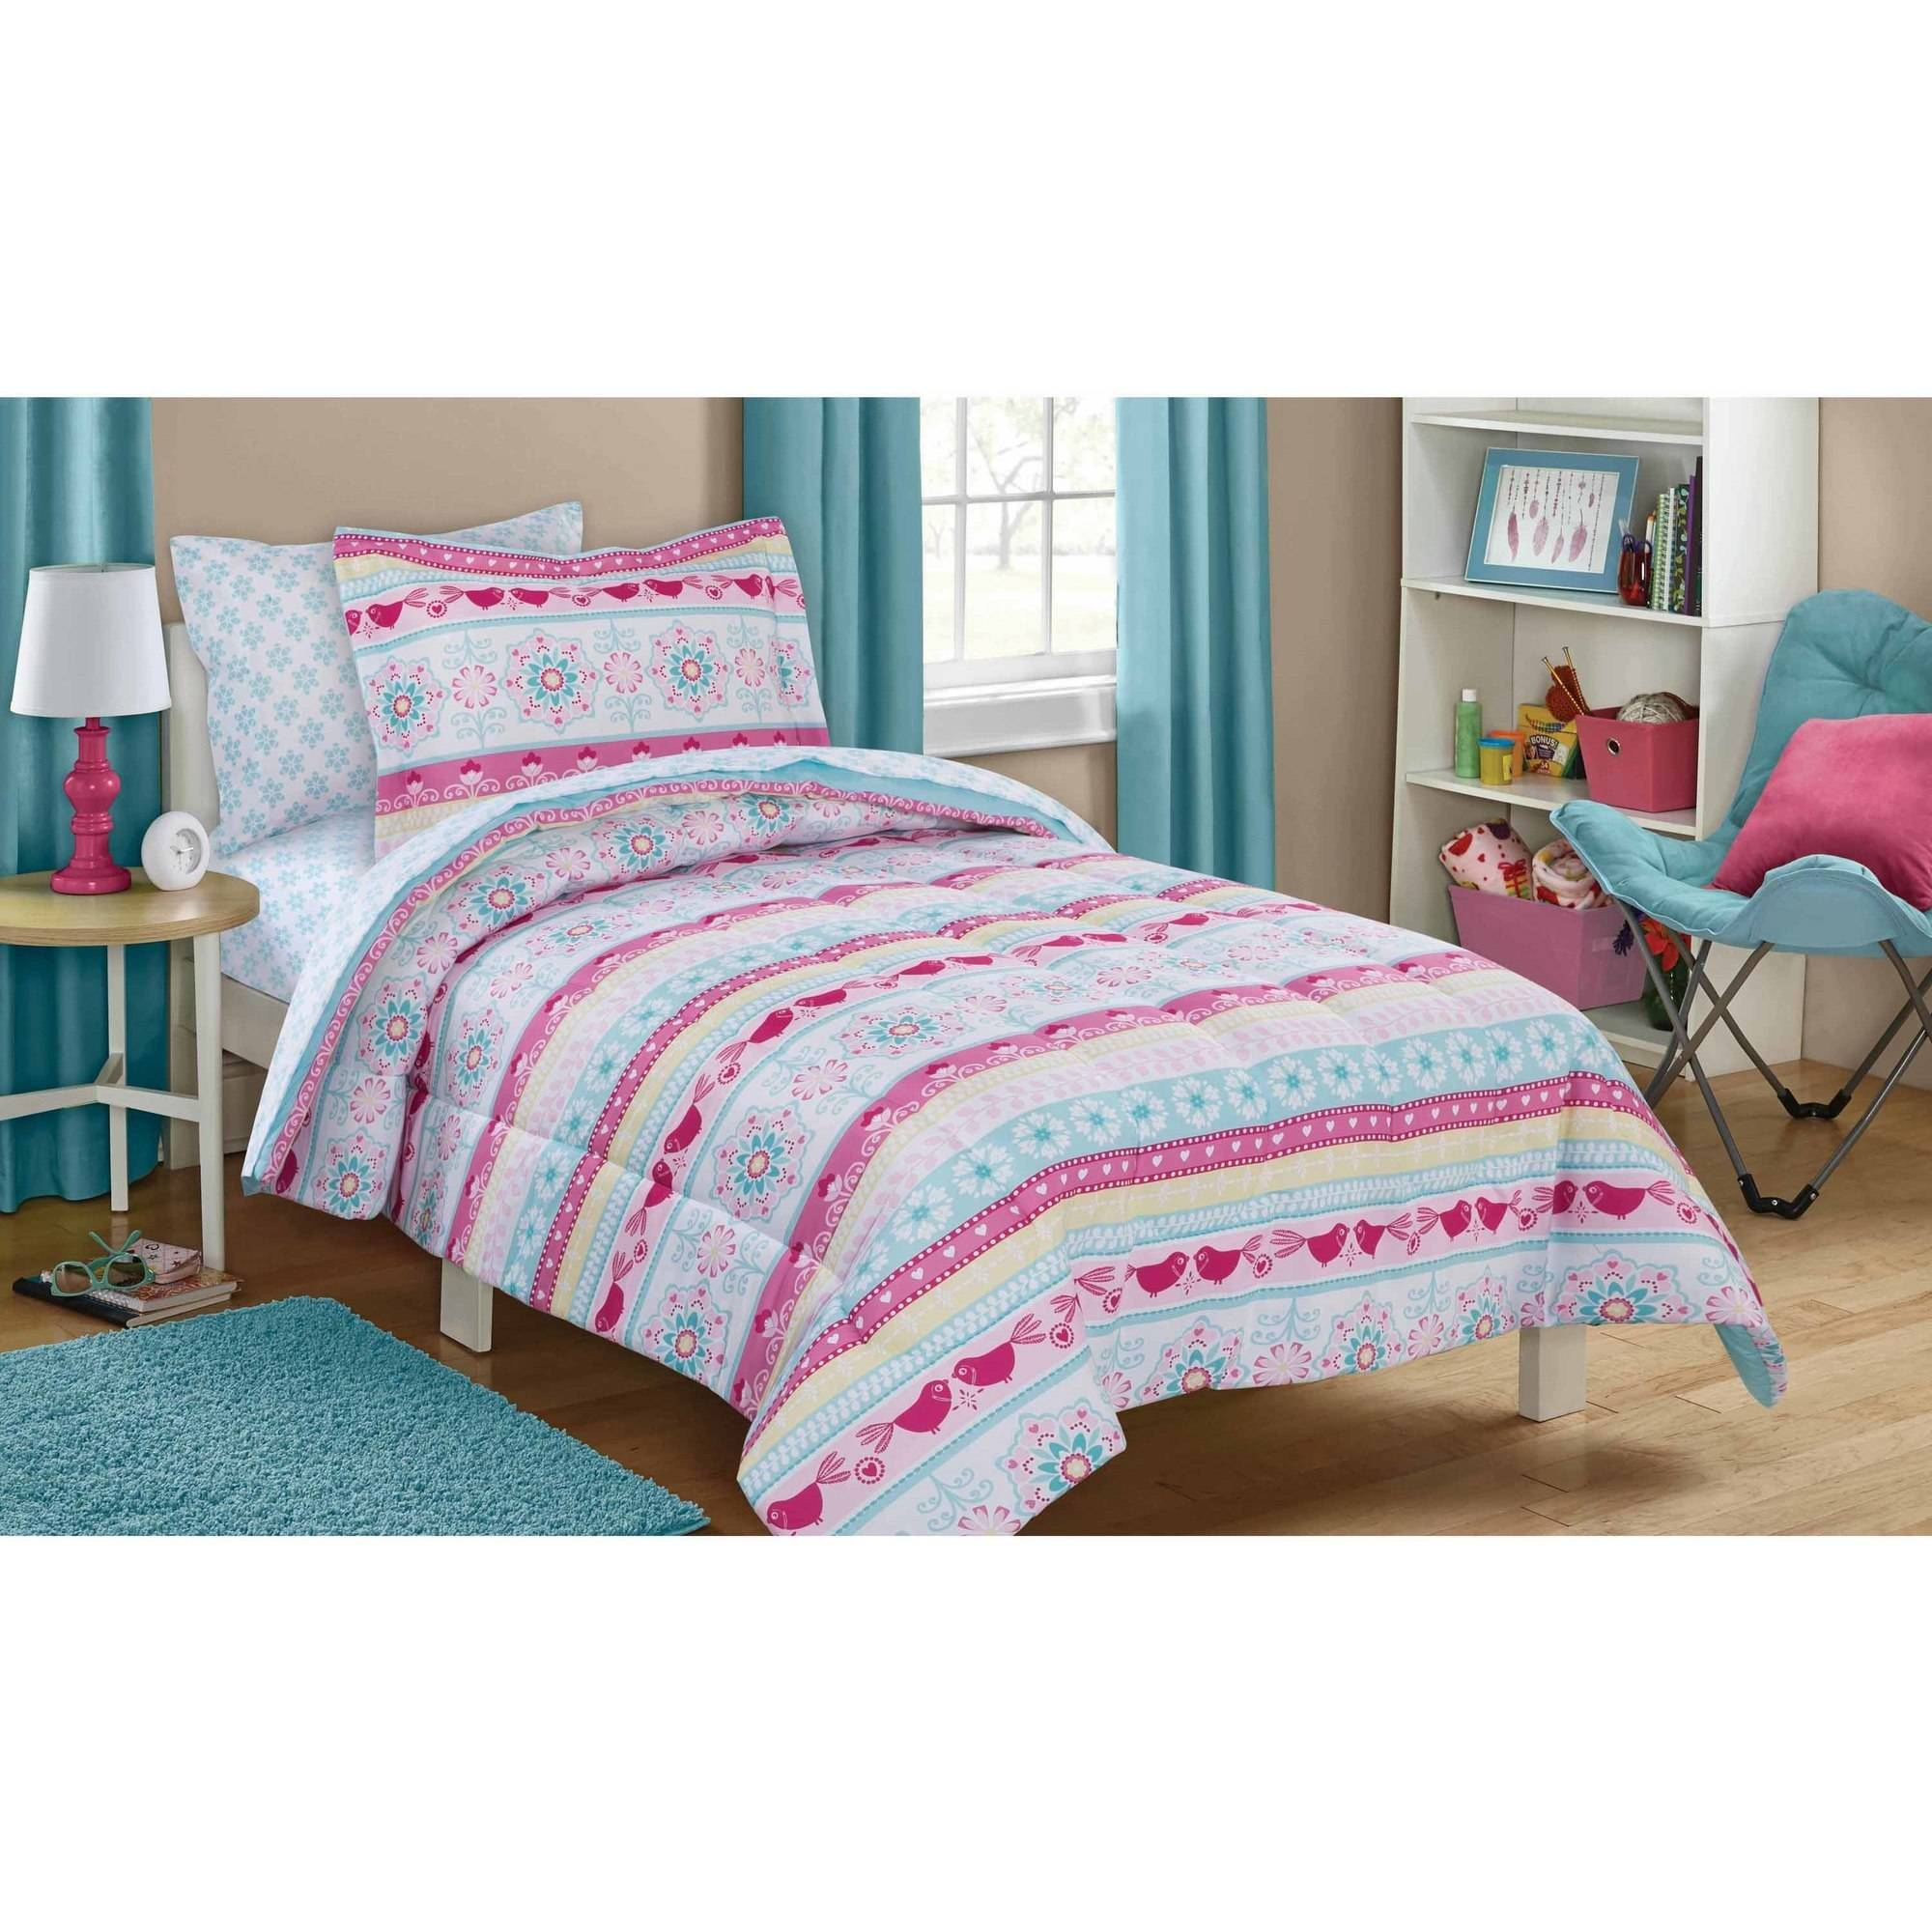 Mainstays Kids Folkloric Stripe Bed in a Bag Bedding Set by Keeco